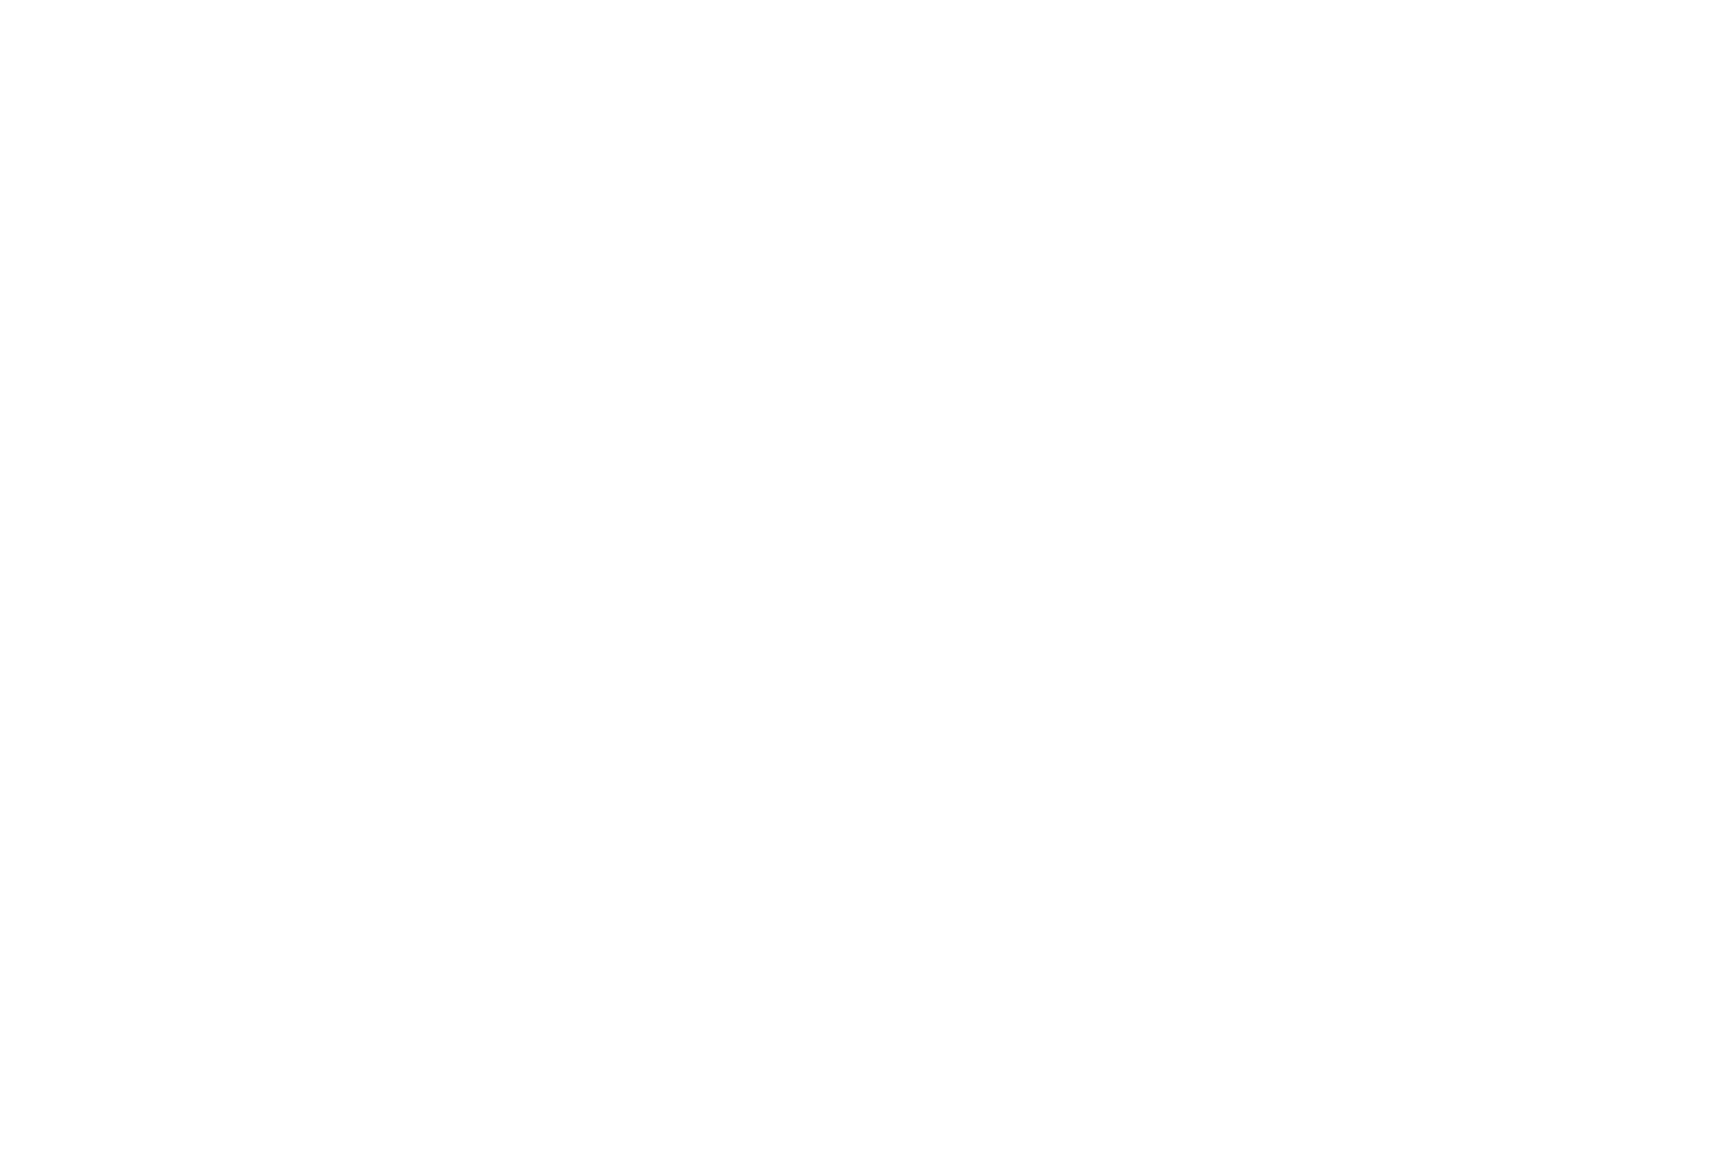 NOMINATED - BEST SHORT FILM USA - NYCIFF 2016 (1).png